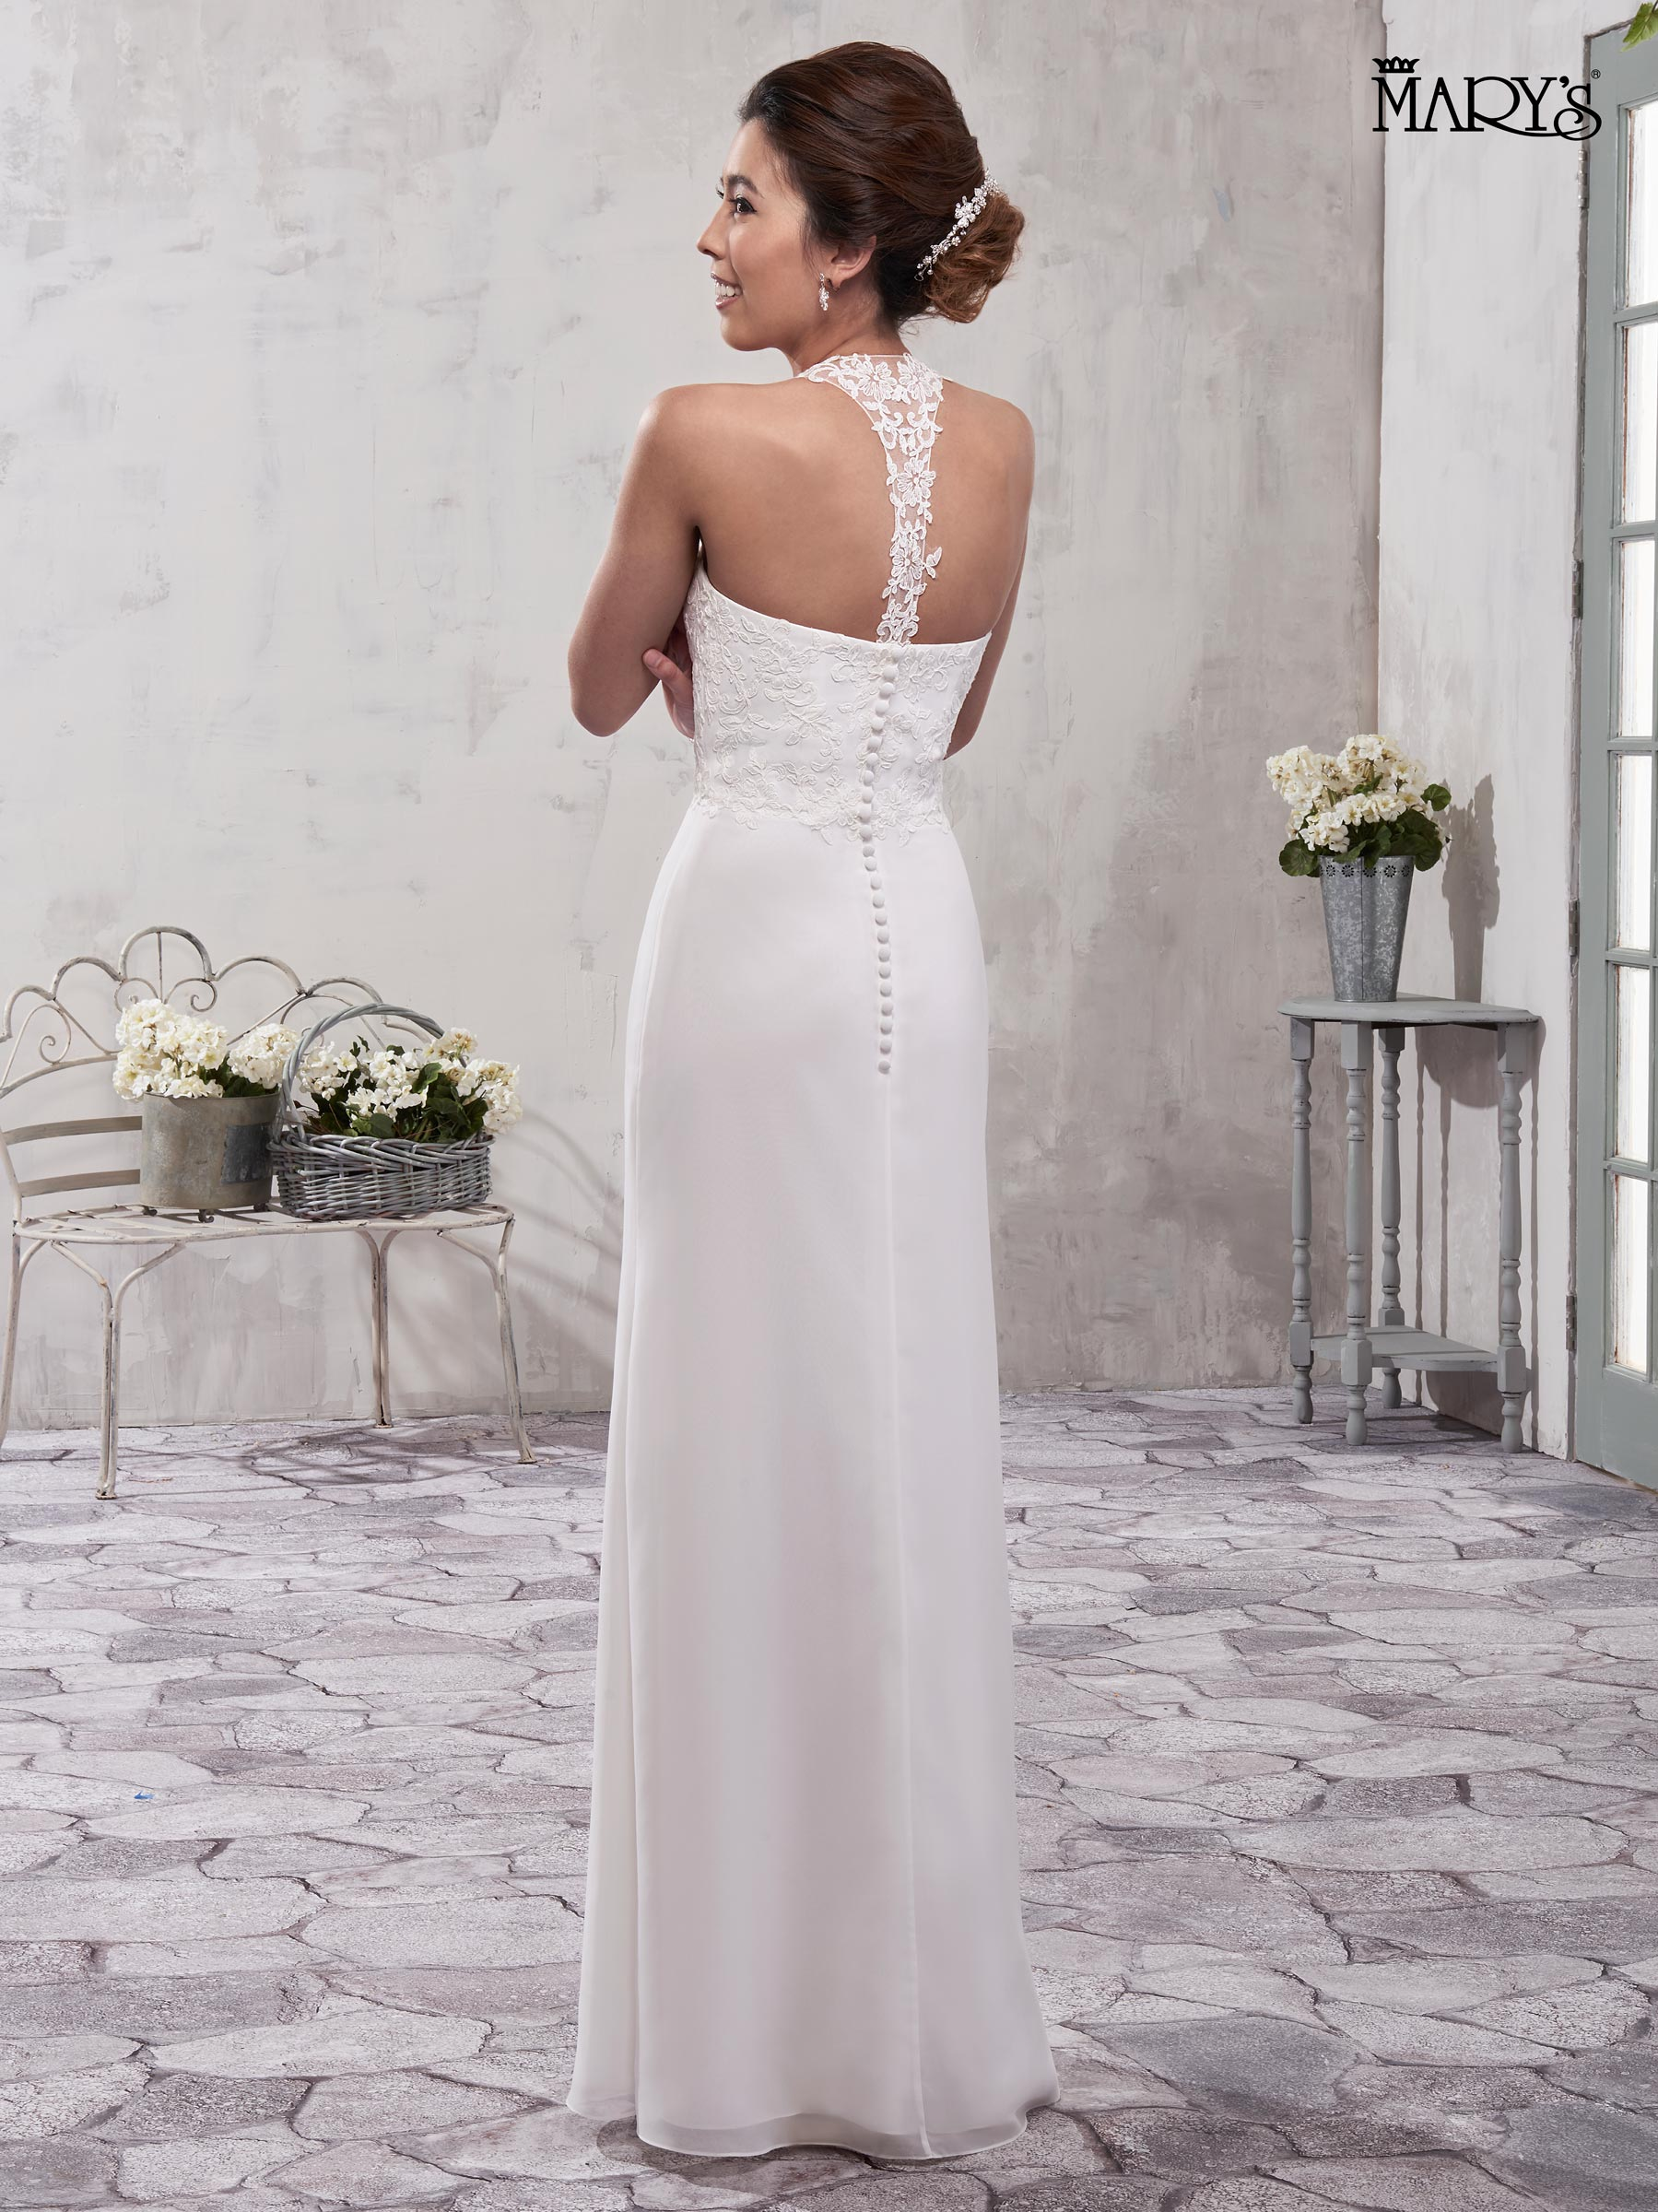 Bridal Wedding Dresses | Mary's | Style - MB1006